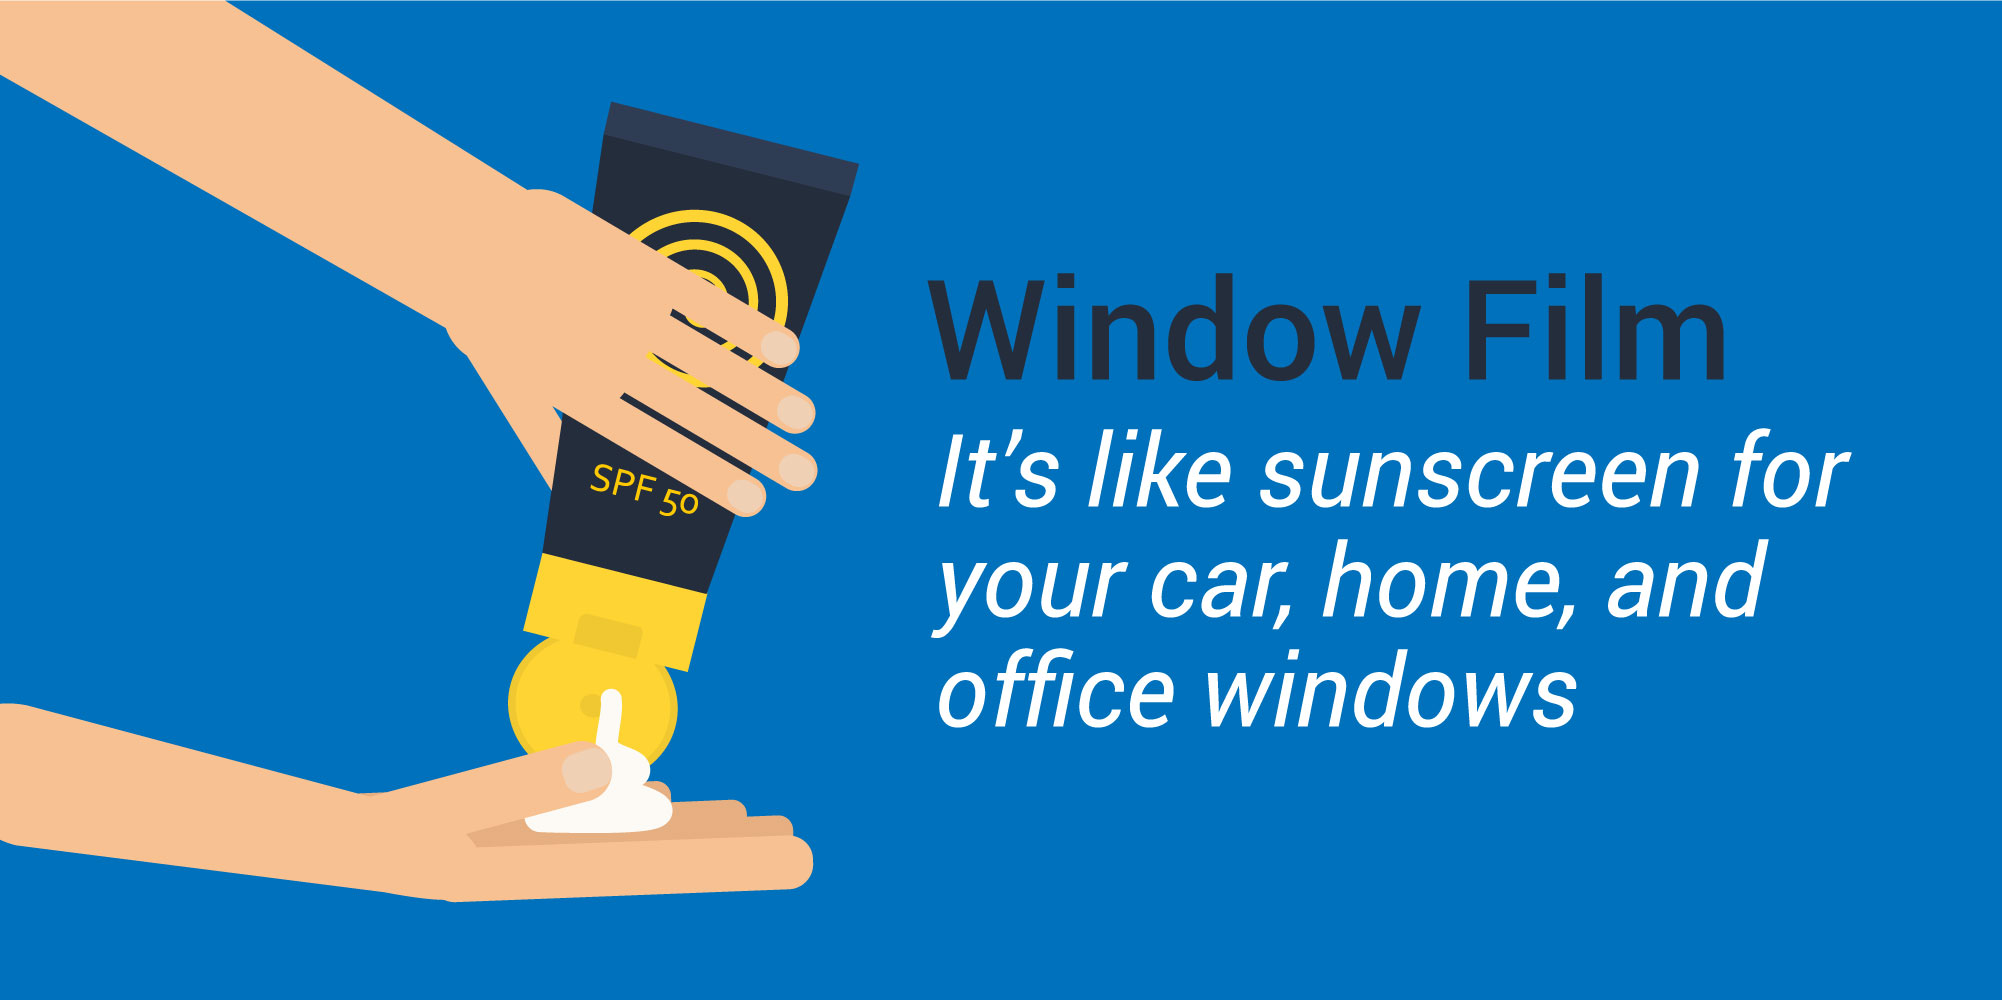 UV-Window-Film-for-Homes-Like-Sunscreen